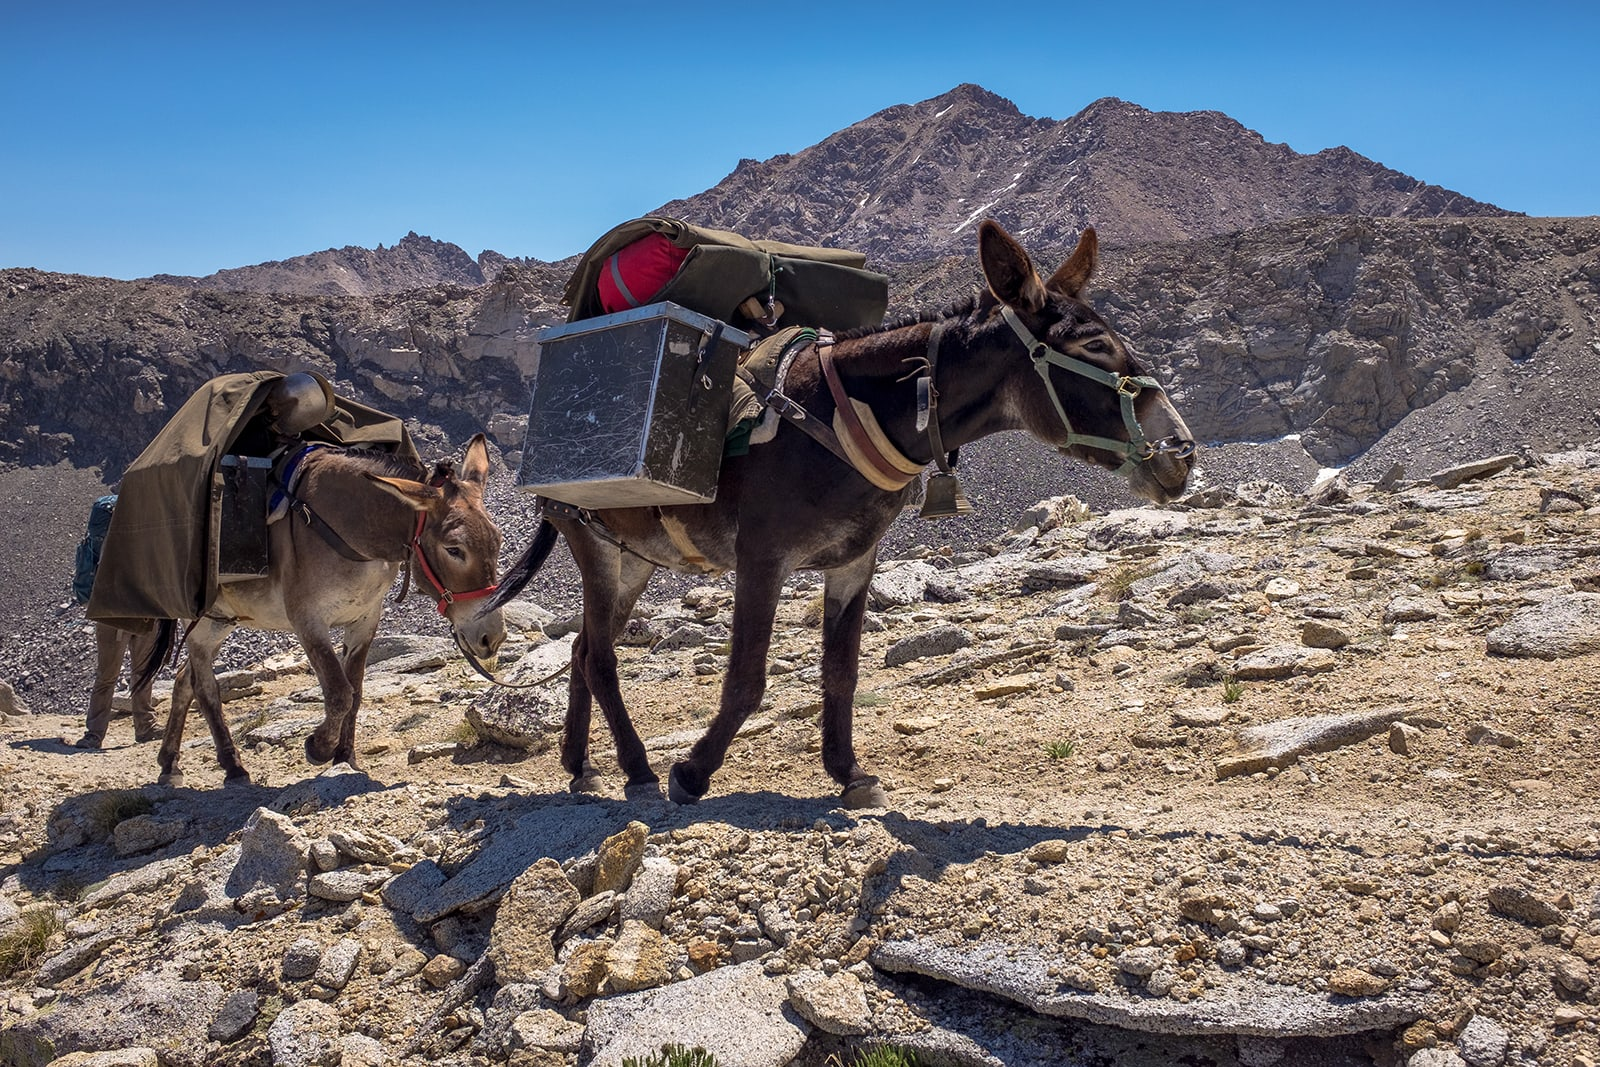 Mules carrying climbing gear towards Forrester Pass.